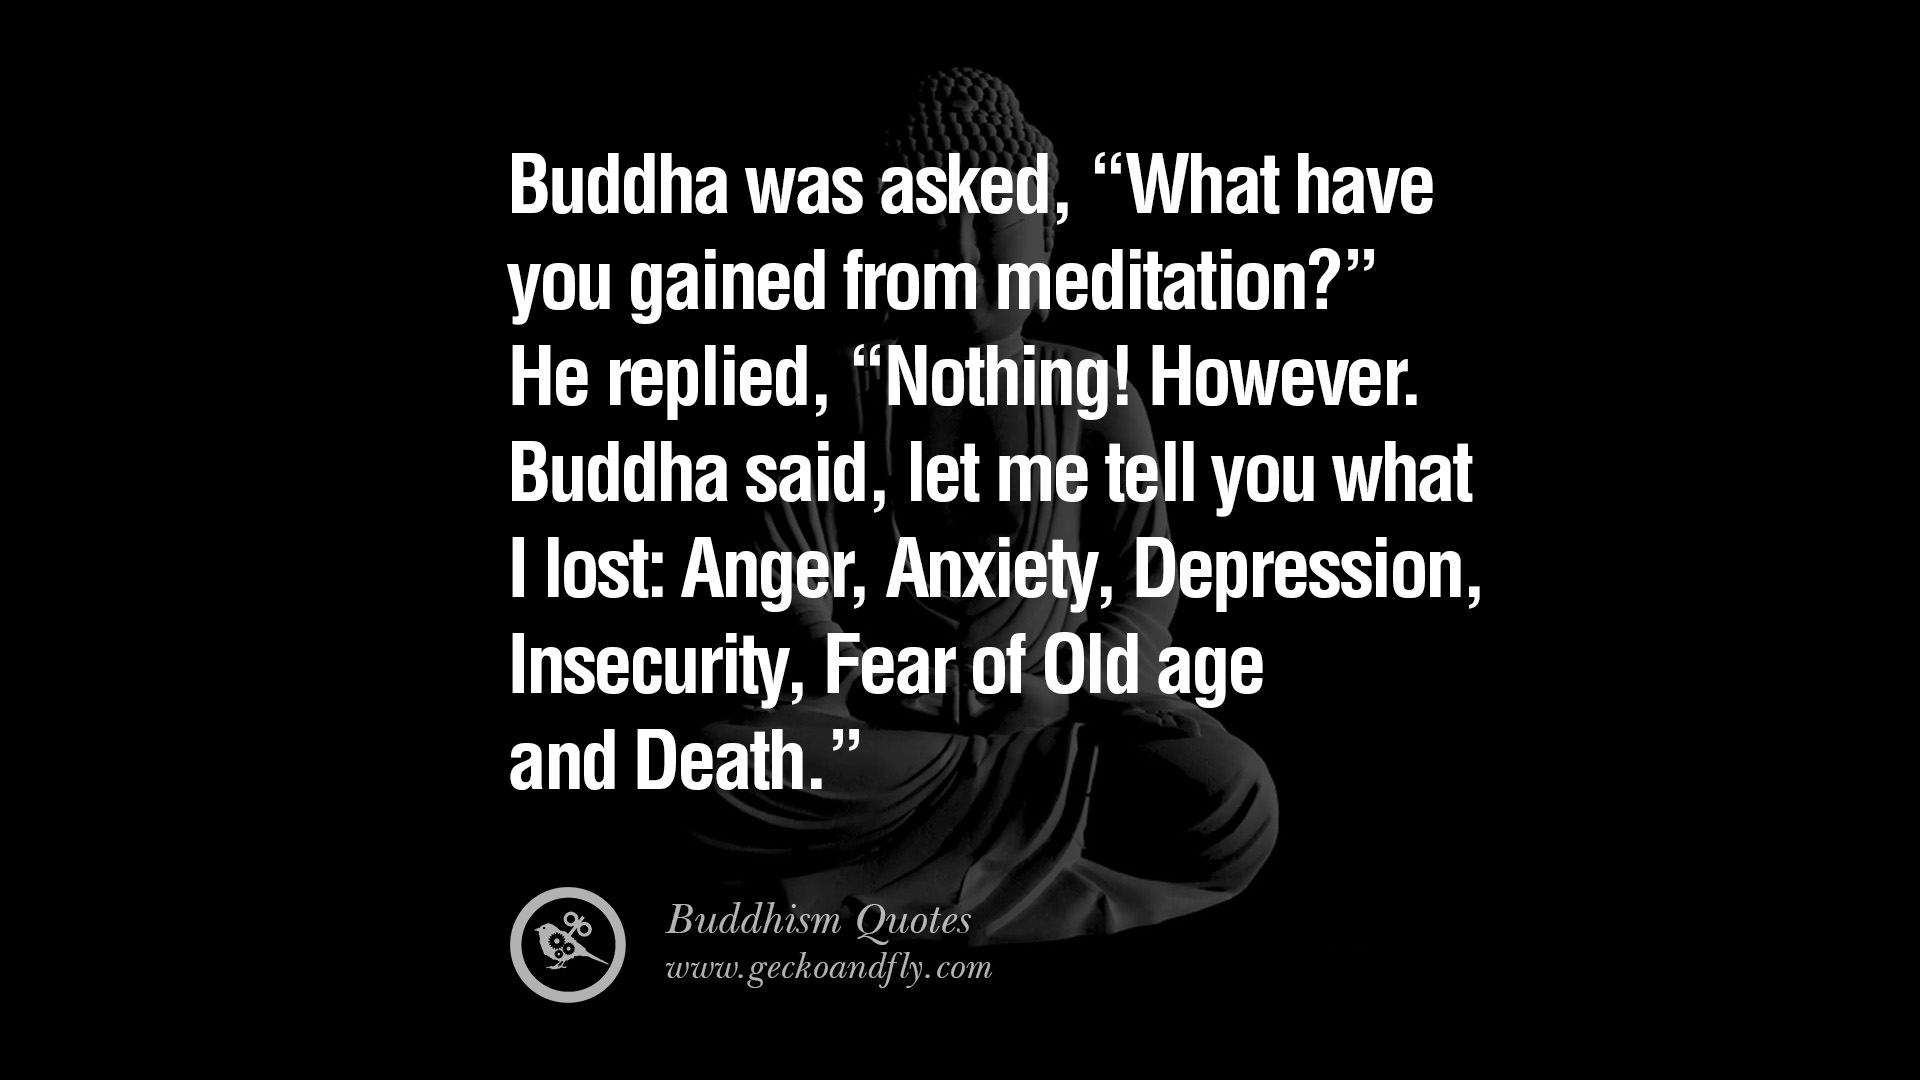 Buddha said let me tell you what i lost anger anxiety depression insecurity fear of old age and death bodhidharma quotes path enlightment